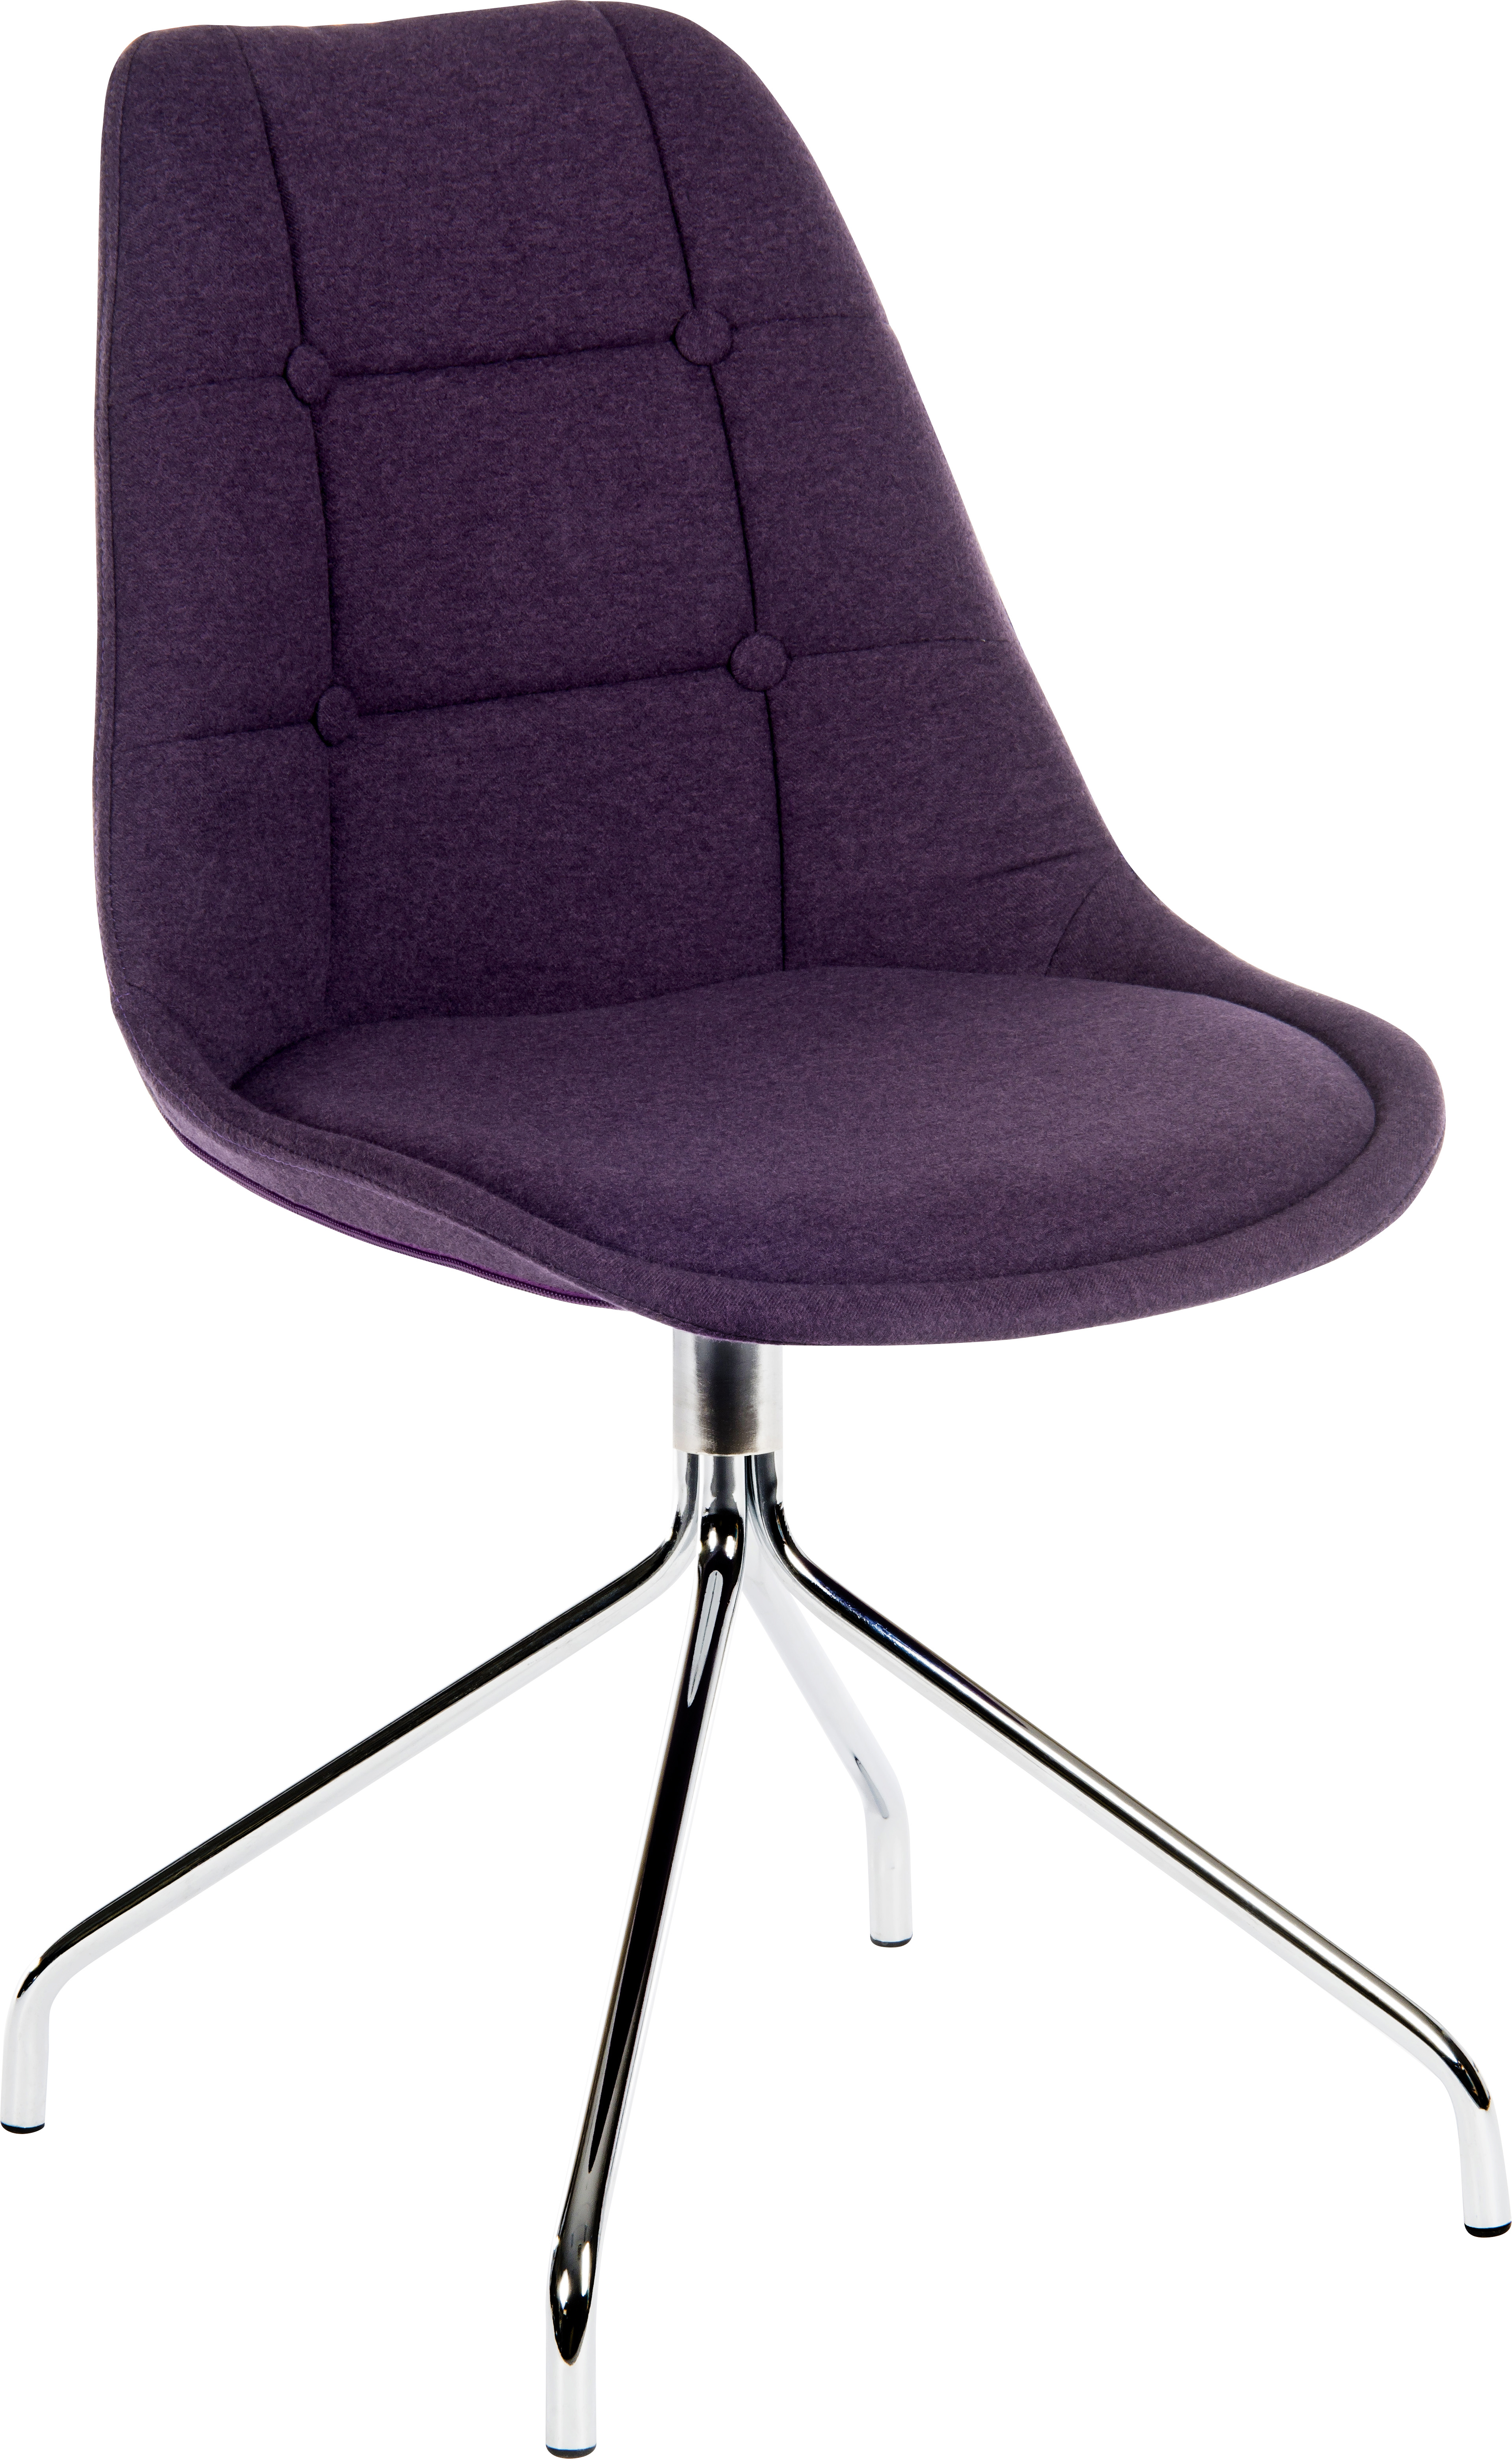 Teknik Office Breakout Chair (Pack of 2) In Plum Colour Soft Brushed Fabric And Modern Chrome Legs